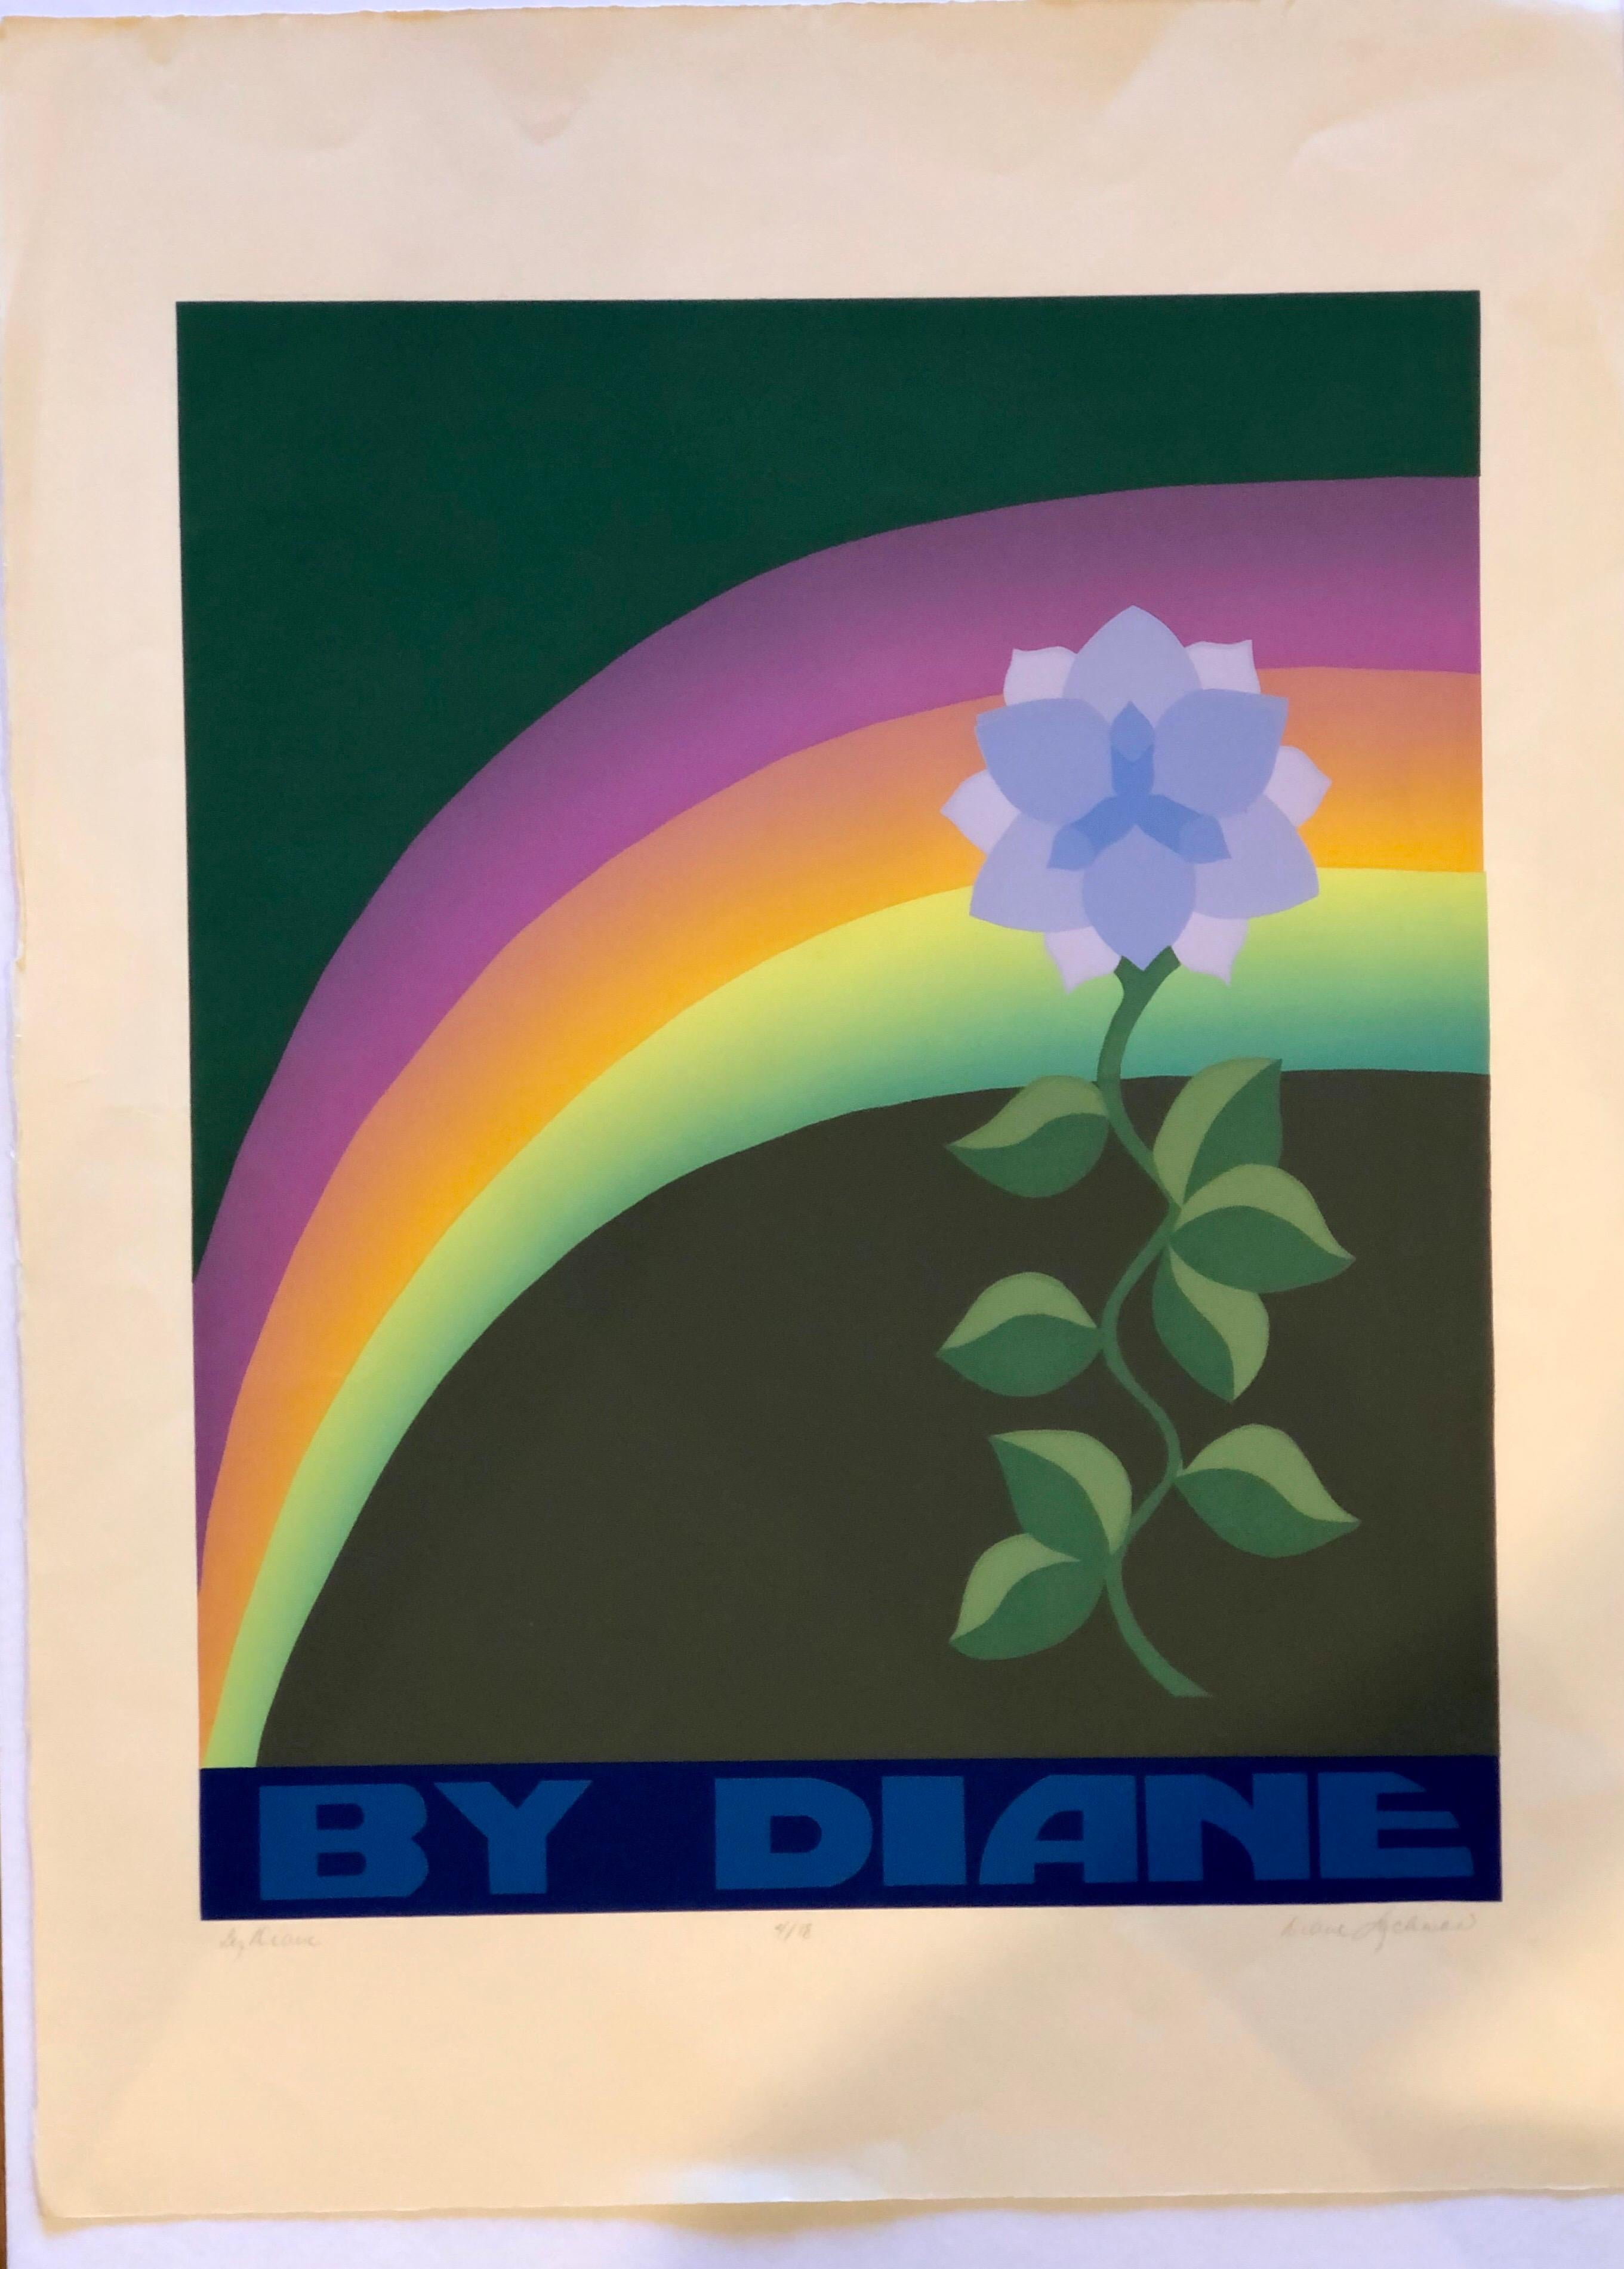 Beautiful Pop Art Lithograph Signed & Numbered 4/18 by Diane Lachman